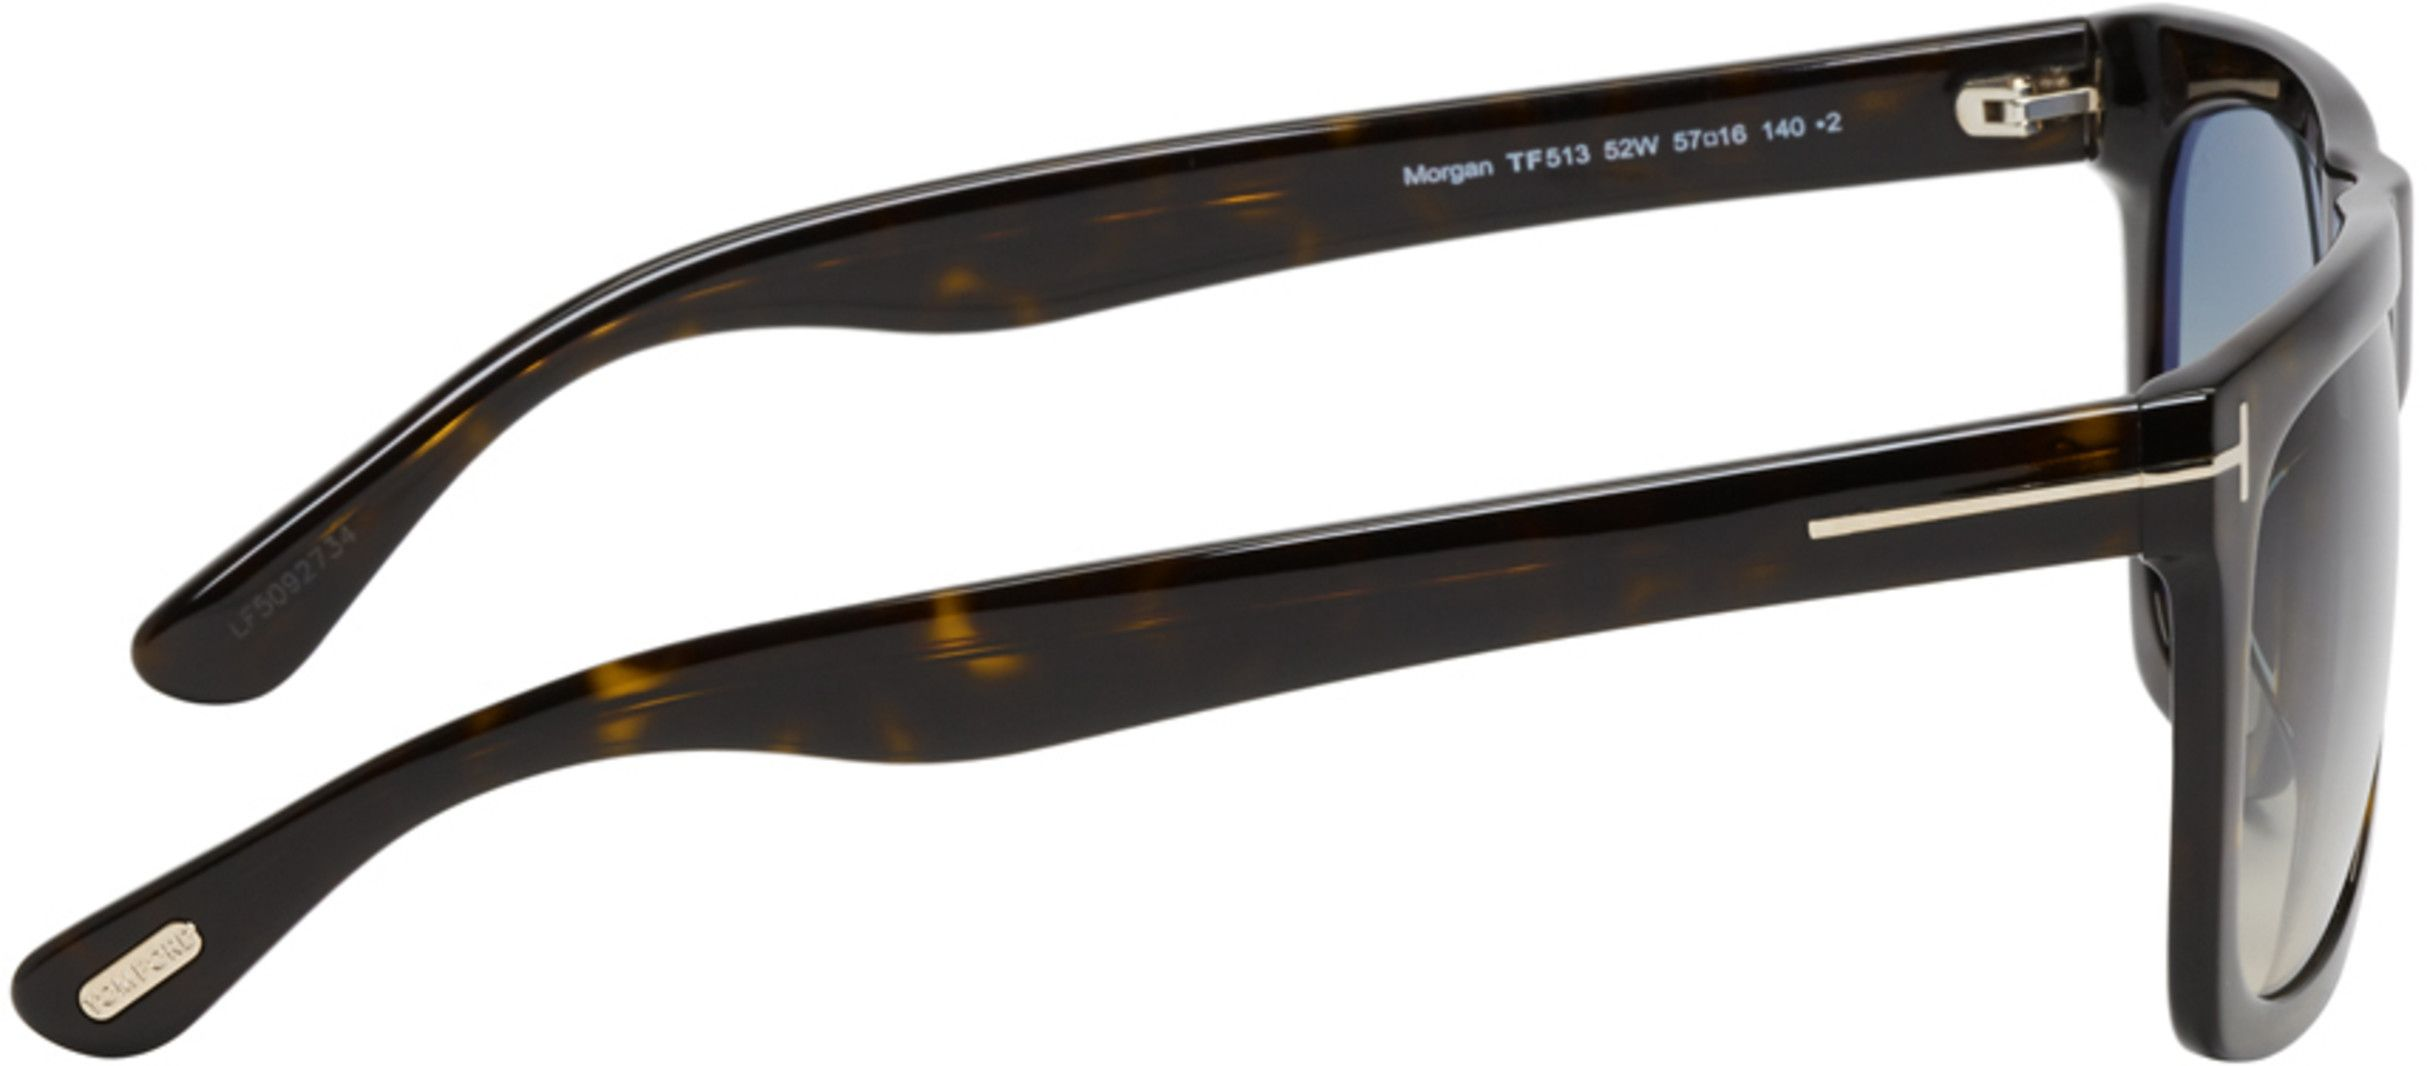 7baefdd901e Tom Ford - Tortoiseshell Morgan Sunglasses